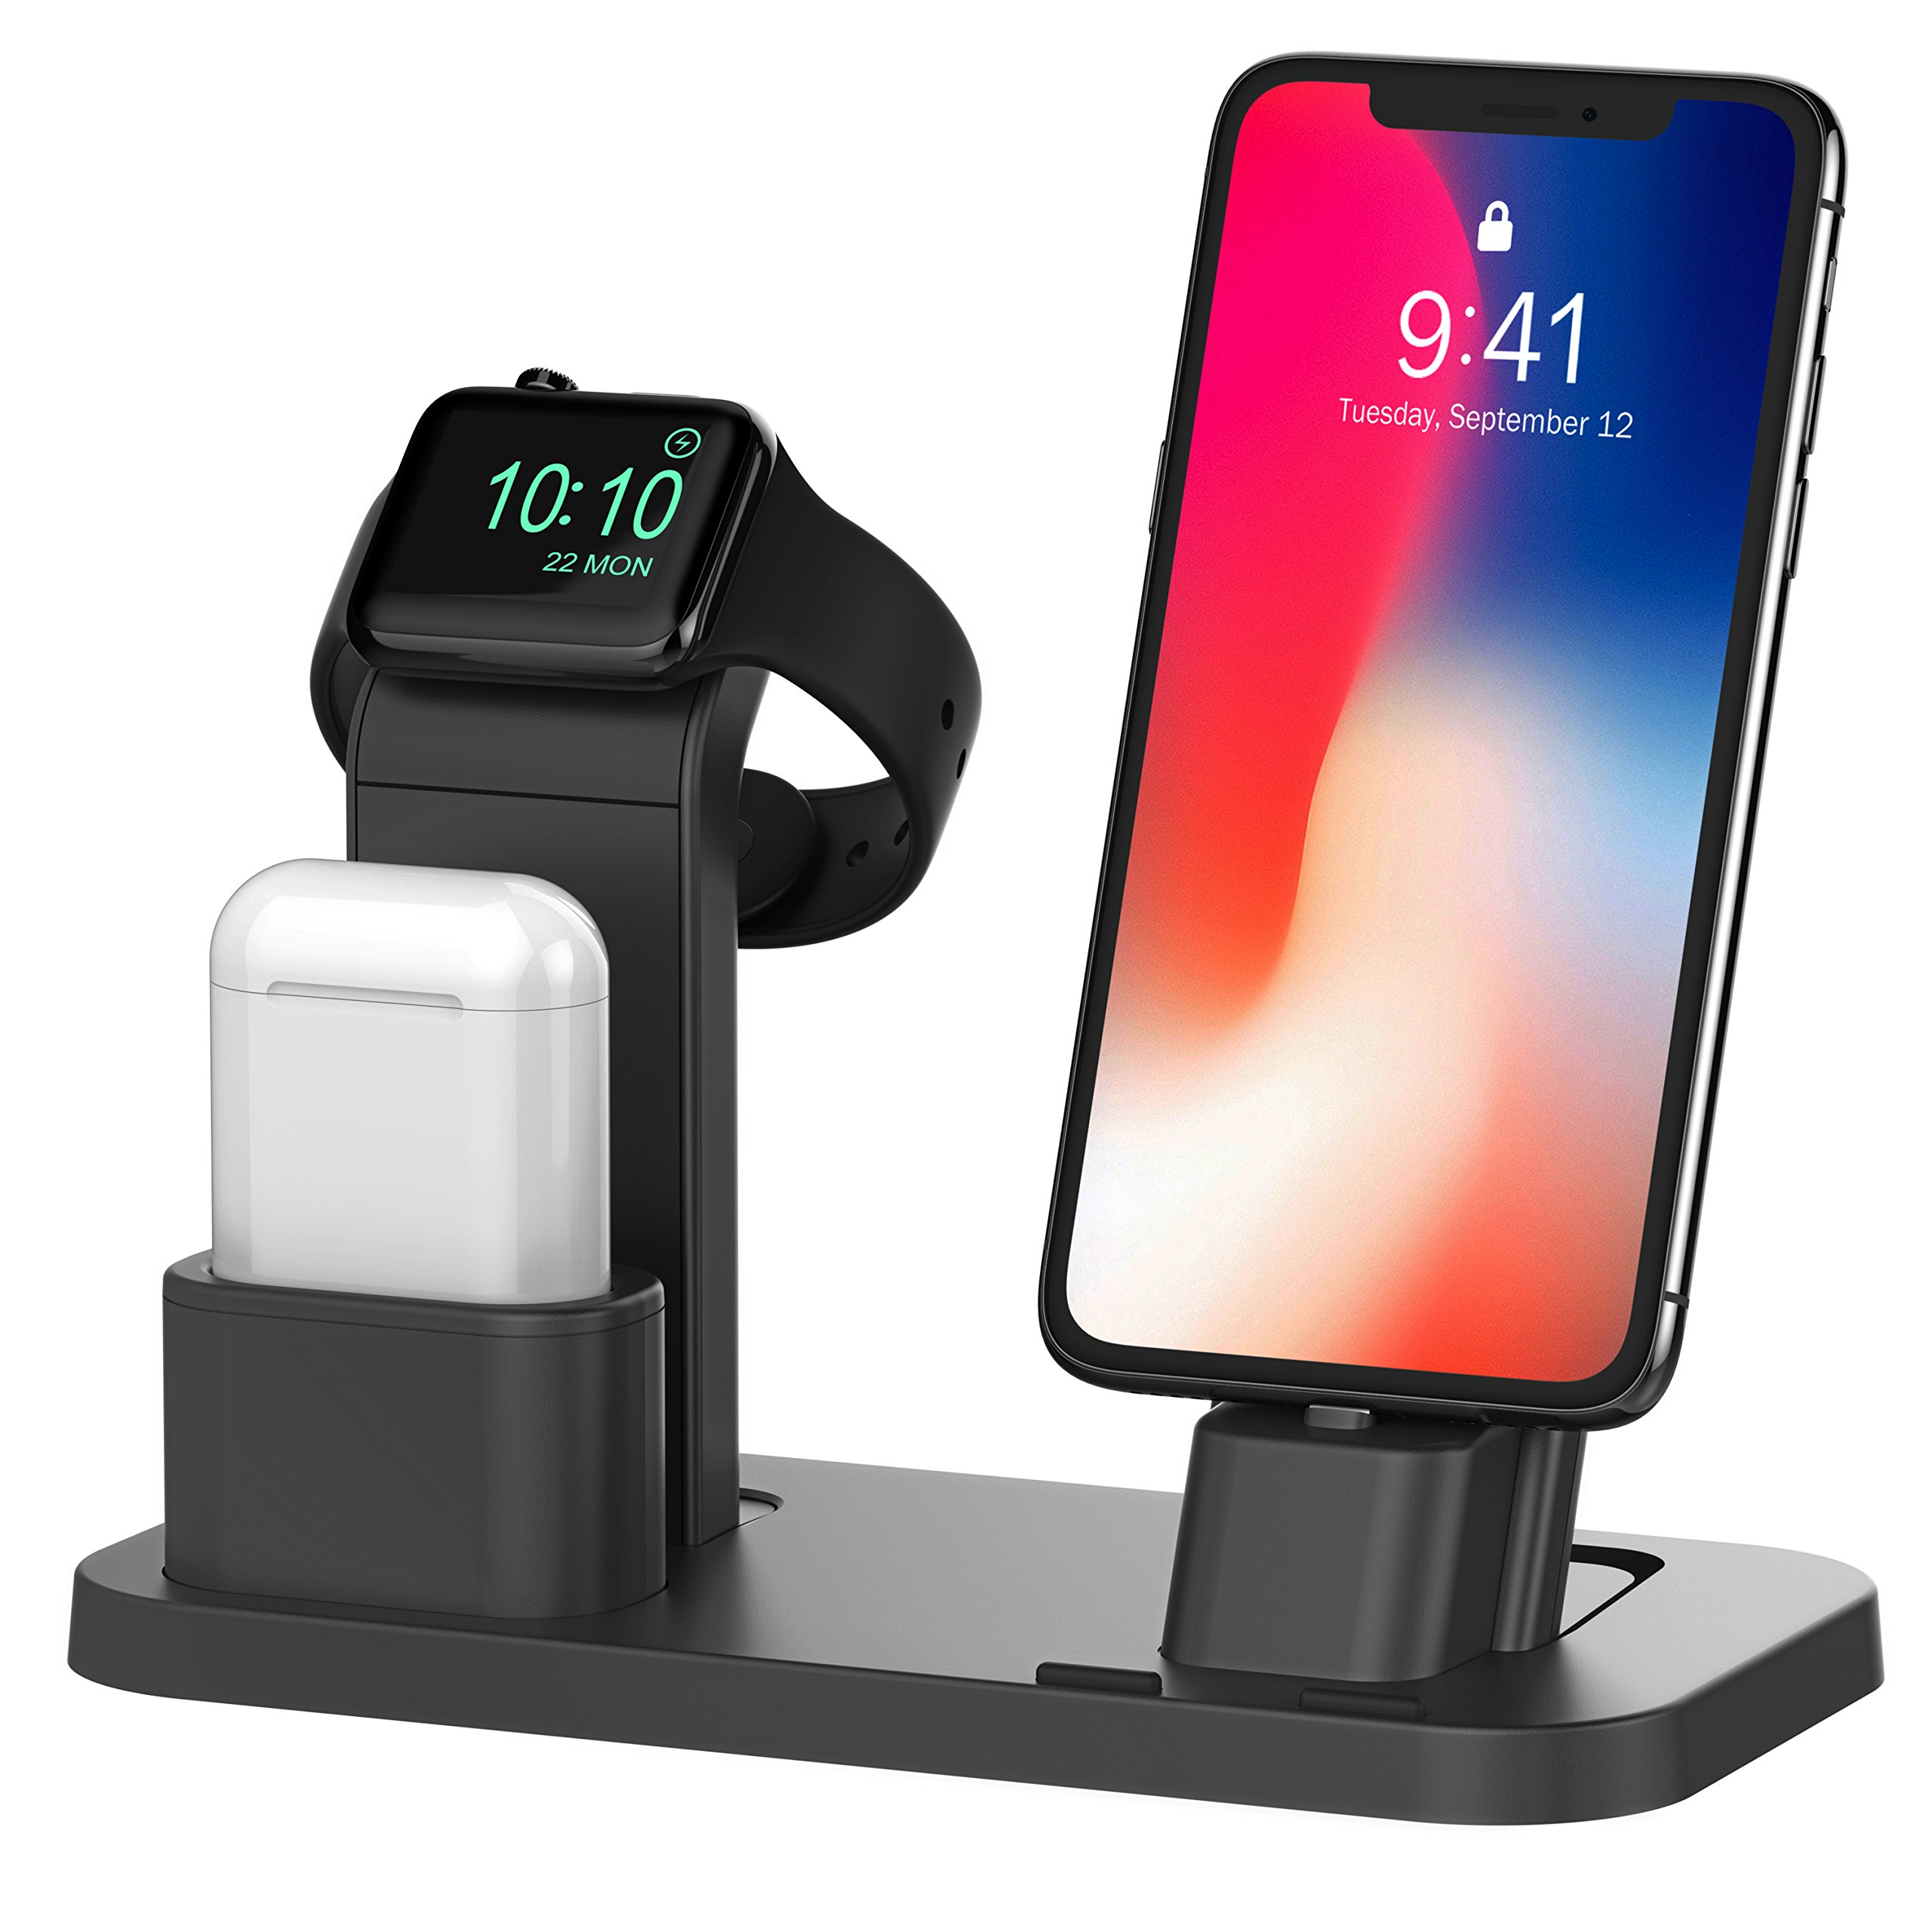 BEACOO for Apple Watch Stand, Charging Stand Dock Station for AirPods Stand Charging Docks Holder, Support for Apple Watch NightStand Mode and for iPhone X/7/7plus/SE/5s/6S/PLUS with Various Case by BEACOO